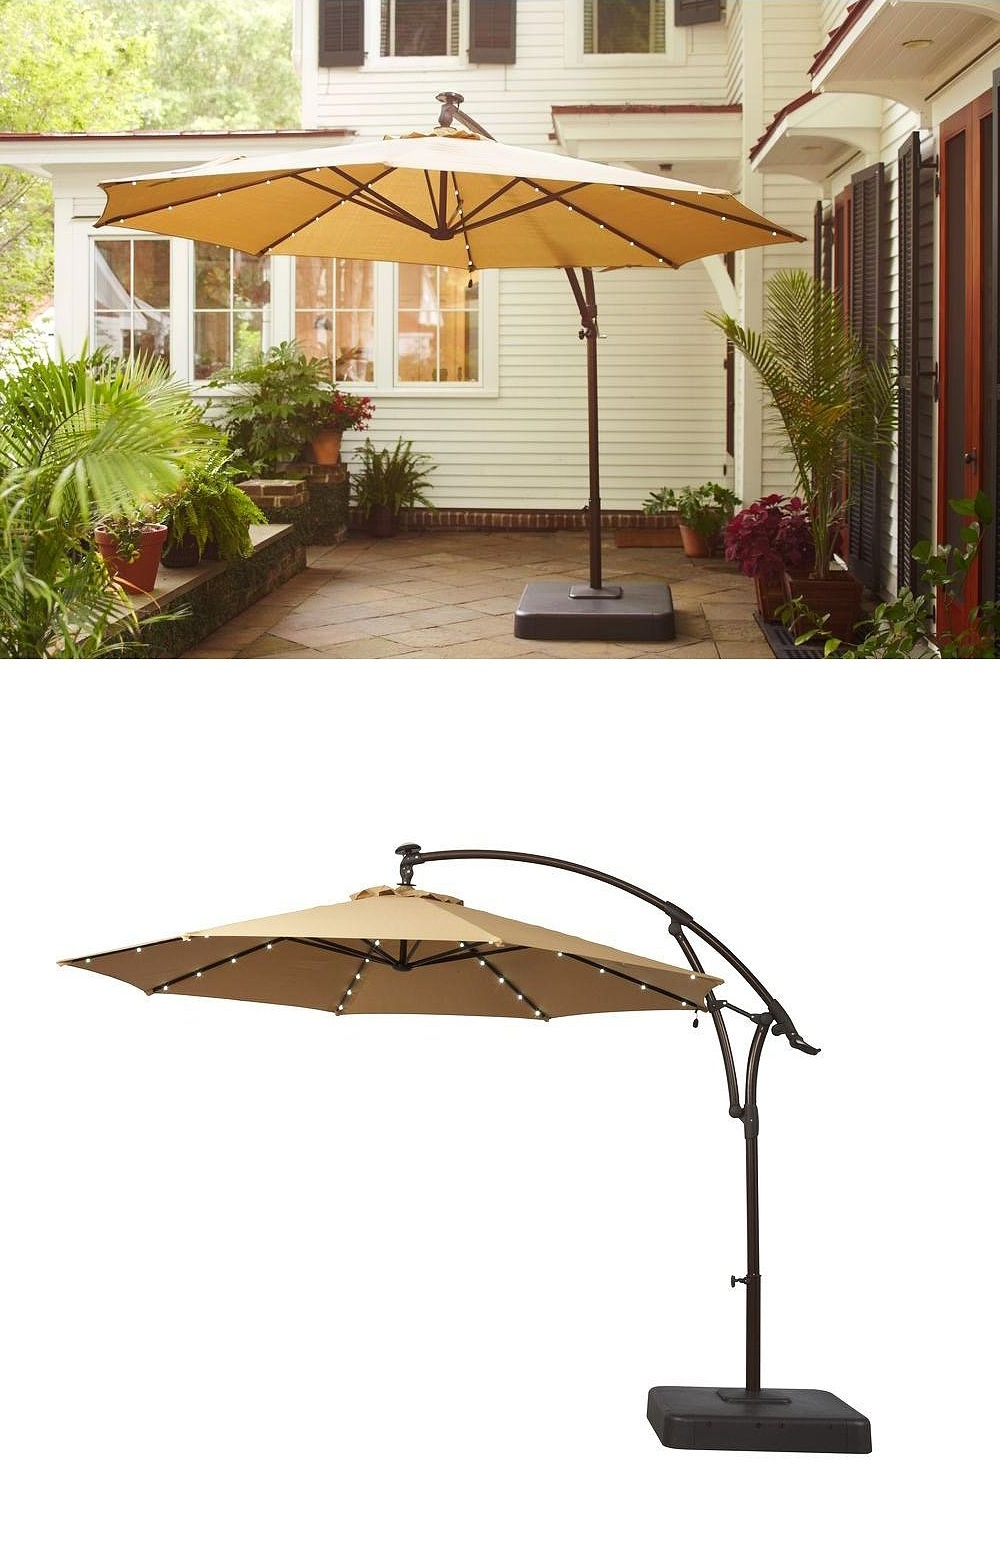 There's Something Special About This Patio Umbrella: It Has Small With Well Liked Patio Umbrellas With Solar Led Lights (View 16 of 20)